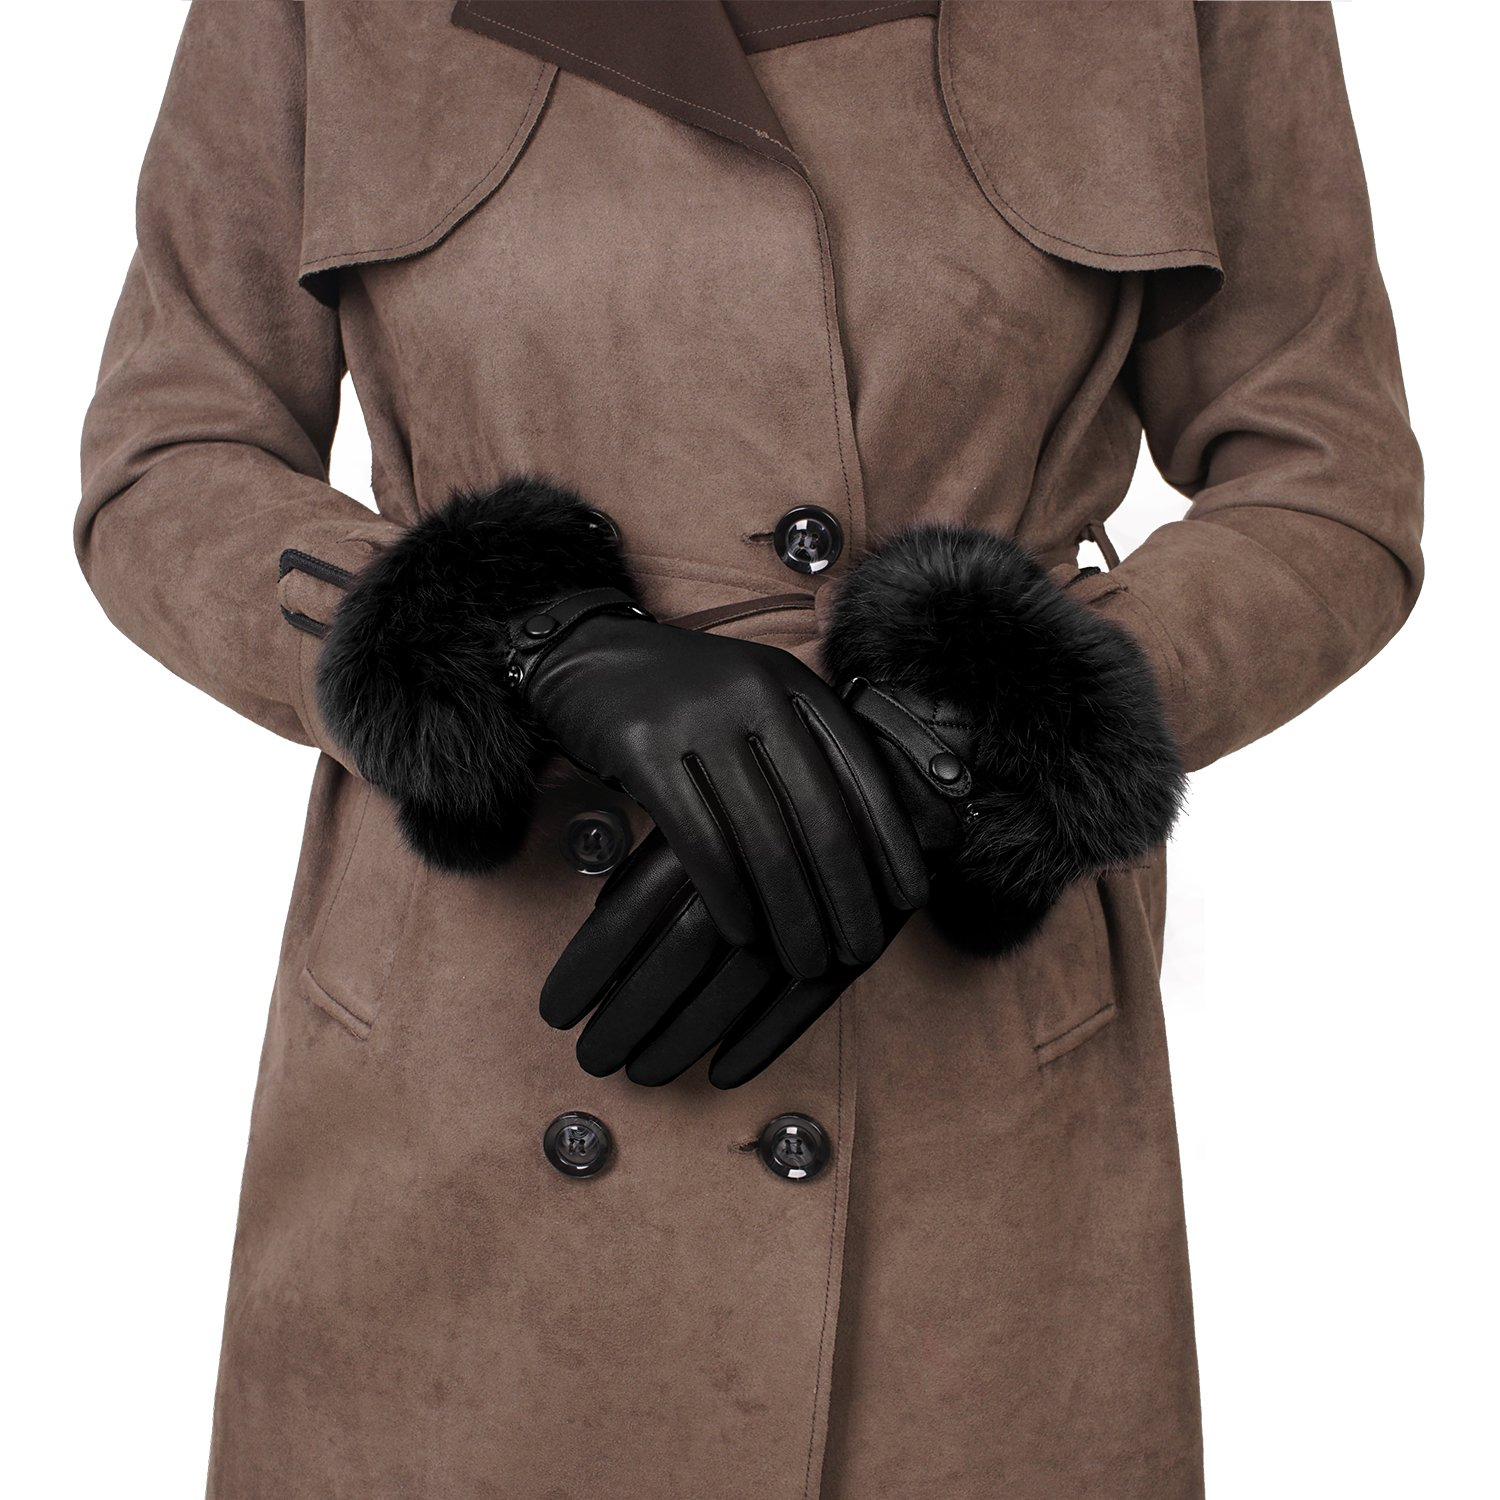 GSG Womens Luxury Italian Genuine Nappa Leather Gloves Fashion Fur Trim Full Palm Touchscreen Winter Warm Gloves Black 8.5 by GSG (Image #3)